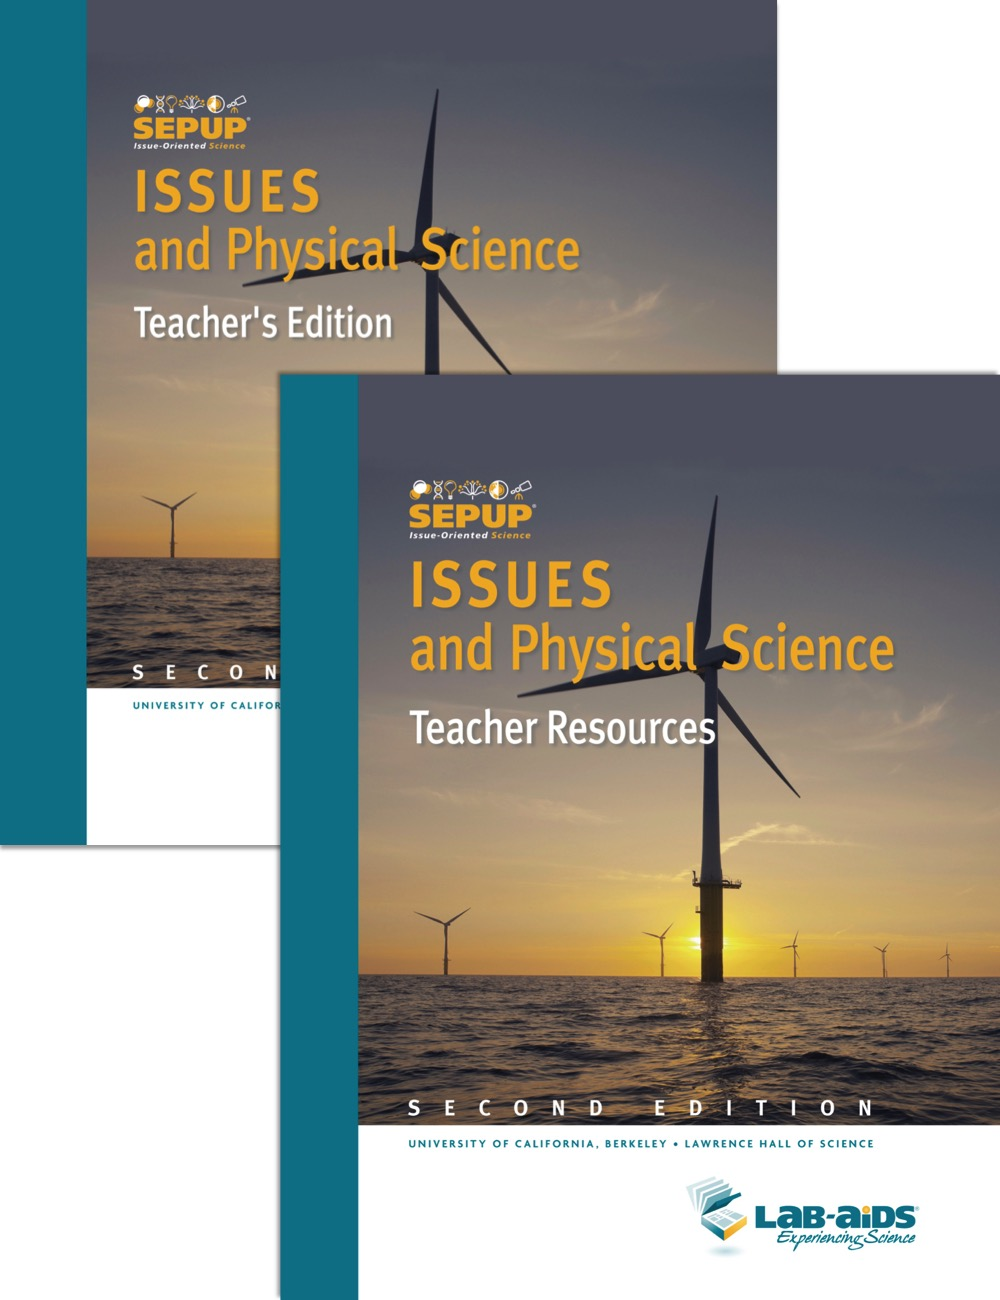 IAPS Full Course Teacher's Edition and Teacher Resources, printed copy